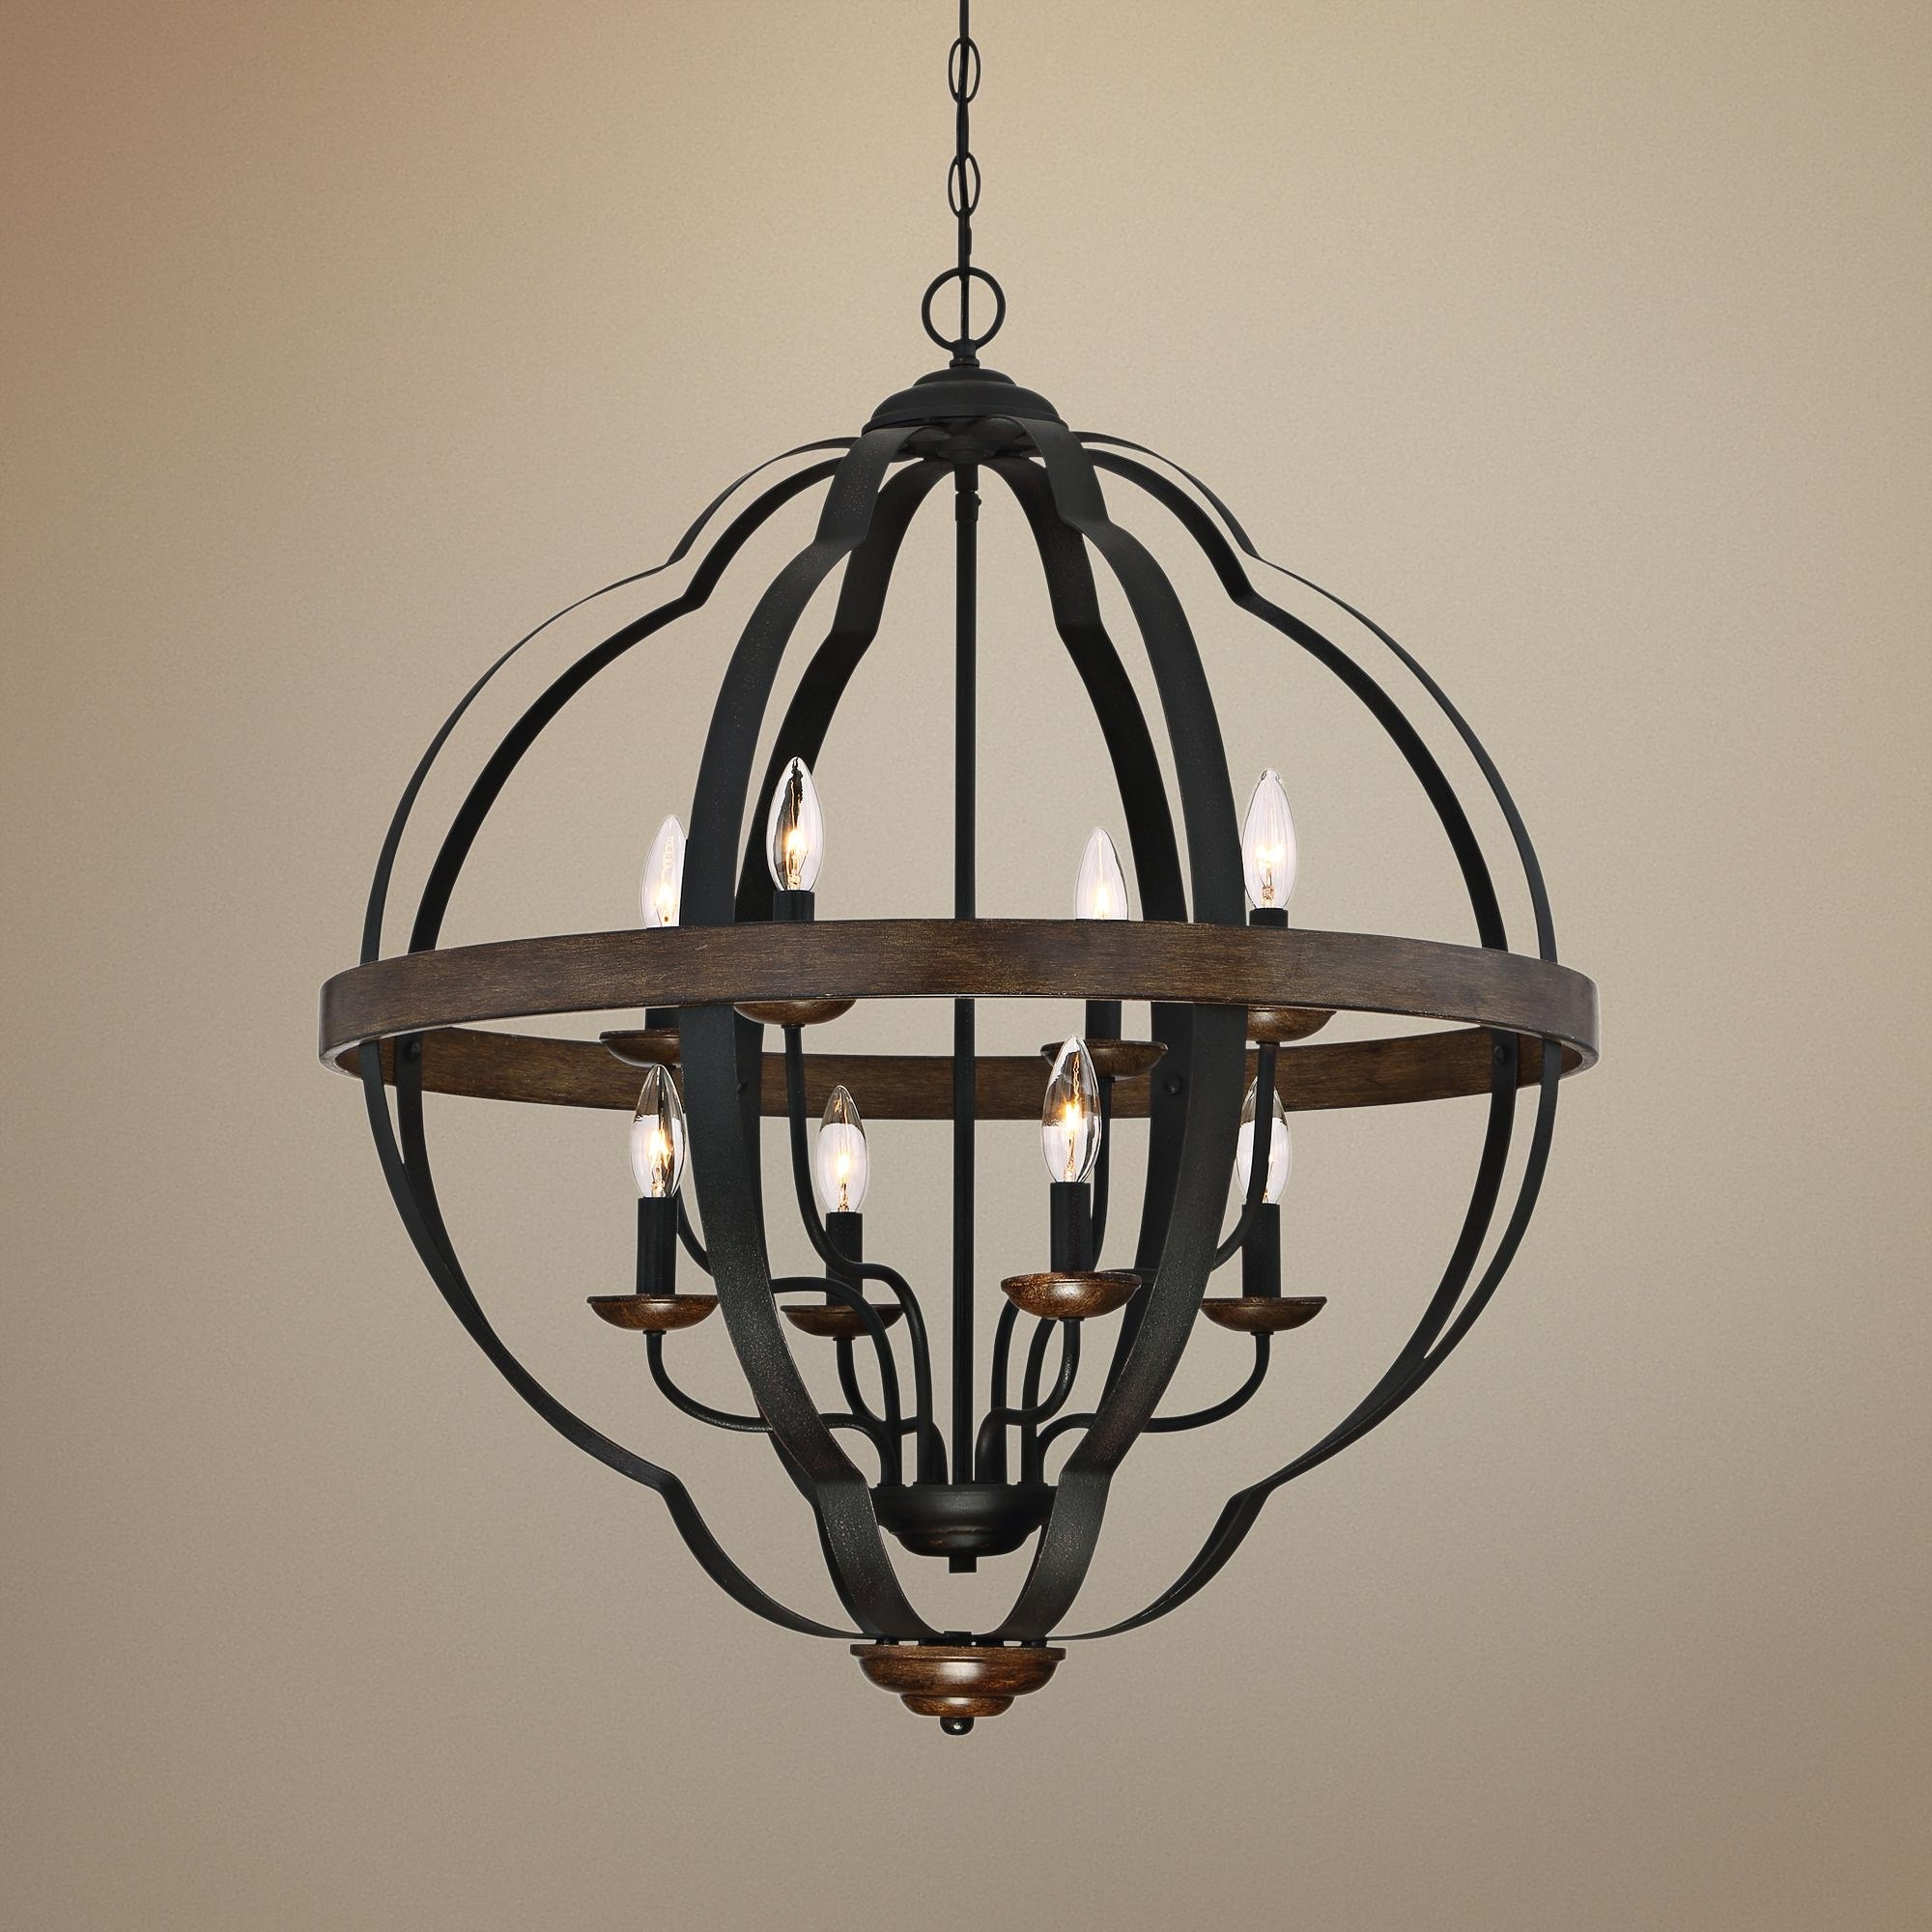 "Quoizel Siren 28""w 8 Light Black Metal Cage Foyer Chandelier (View 20 of 20)"